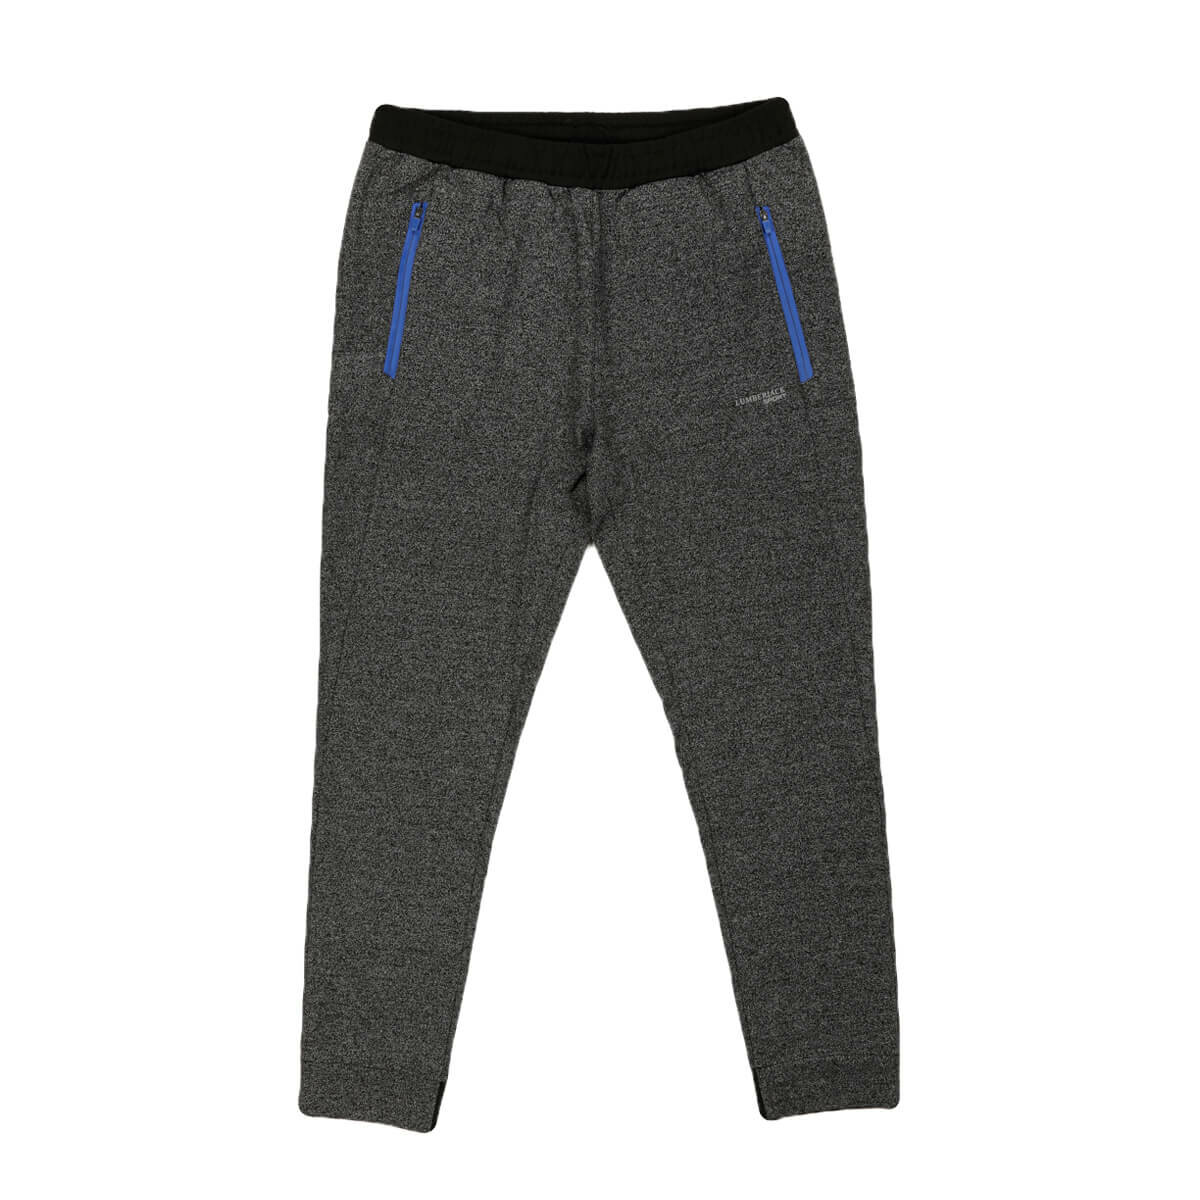 FLO MILAN 2 SINGLE BOTTOM GRAY MELANGE Male Tracksuit LUMBERJACK